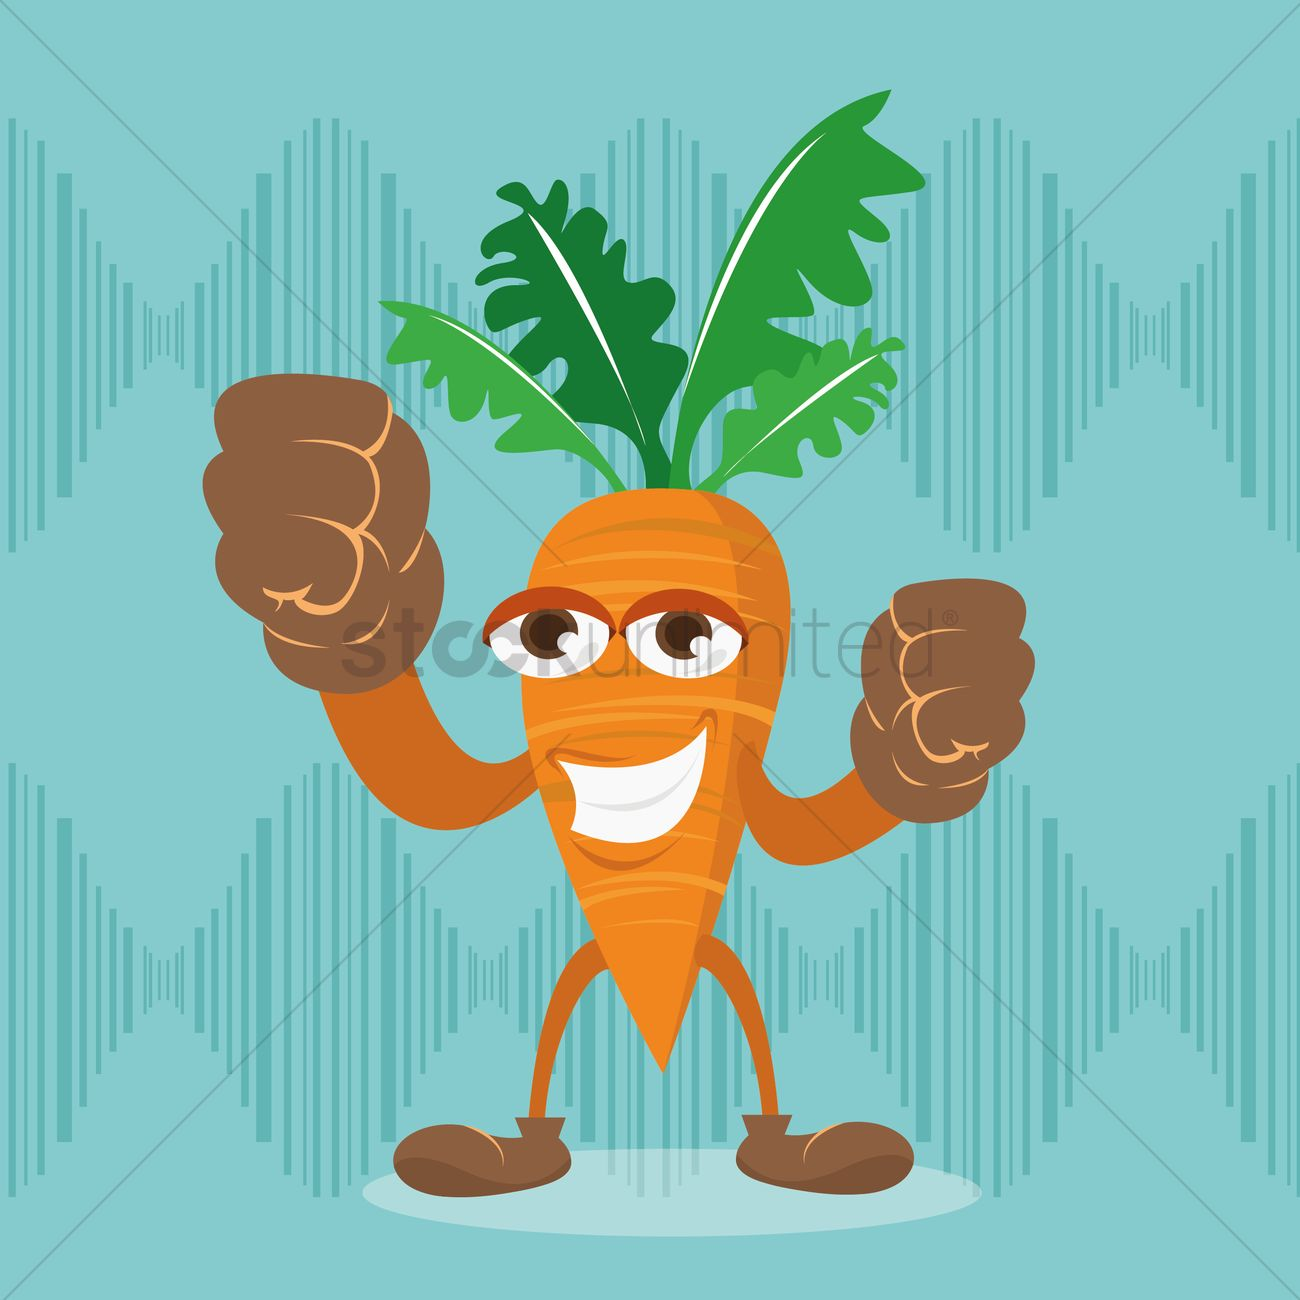 Grinning Carrot Cartoon With Clenched Fist Vector Image 1427421